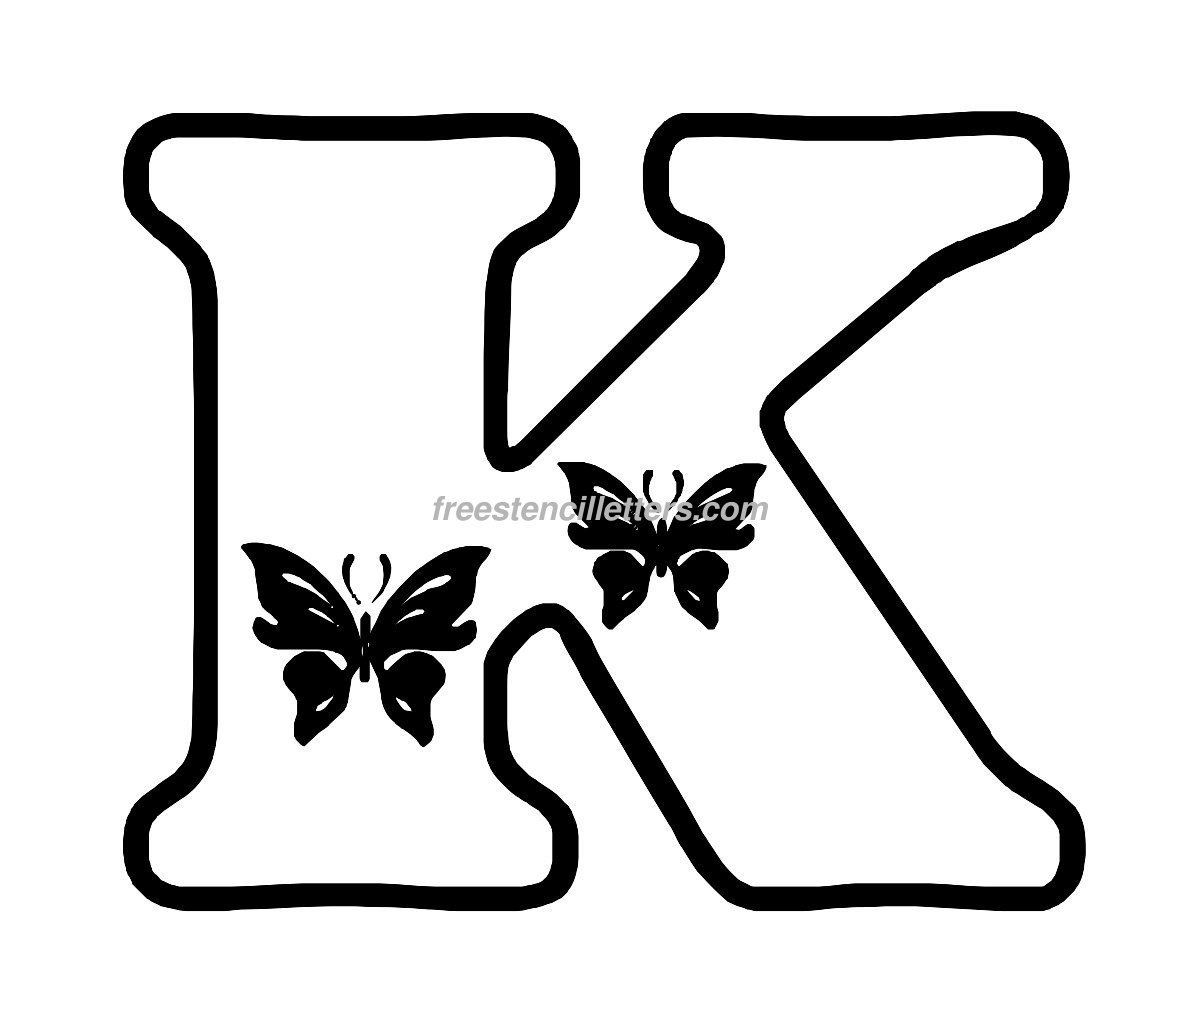 photograph about Printable Stencils Letters titled Print K Letter Stencil - Free of charge Stencil Letters